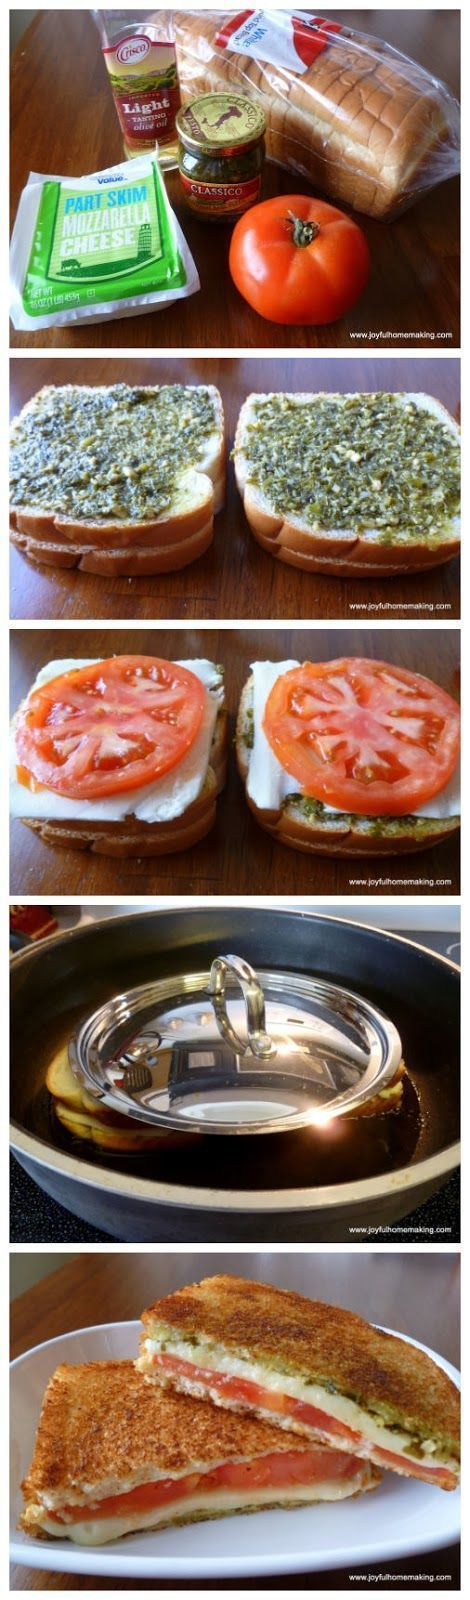 Tomato basil mozzarella sandwich. I love these!